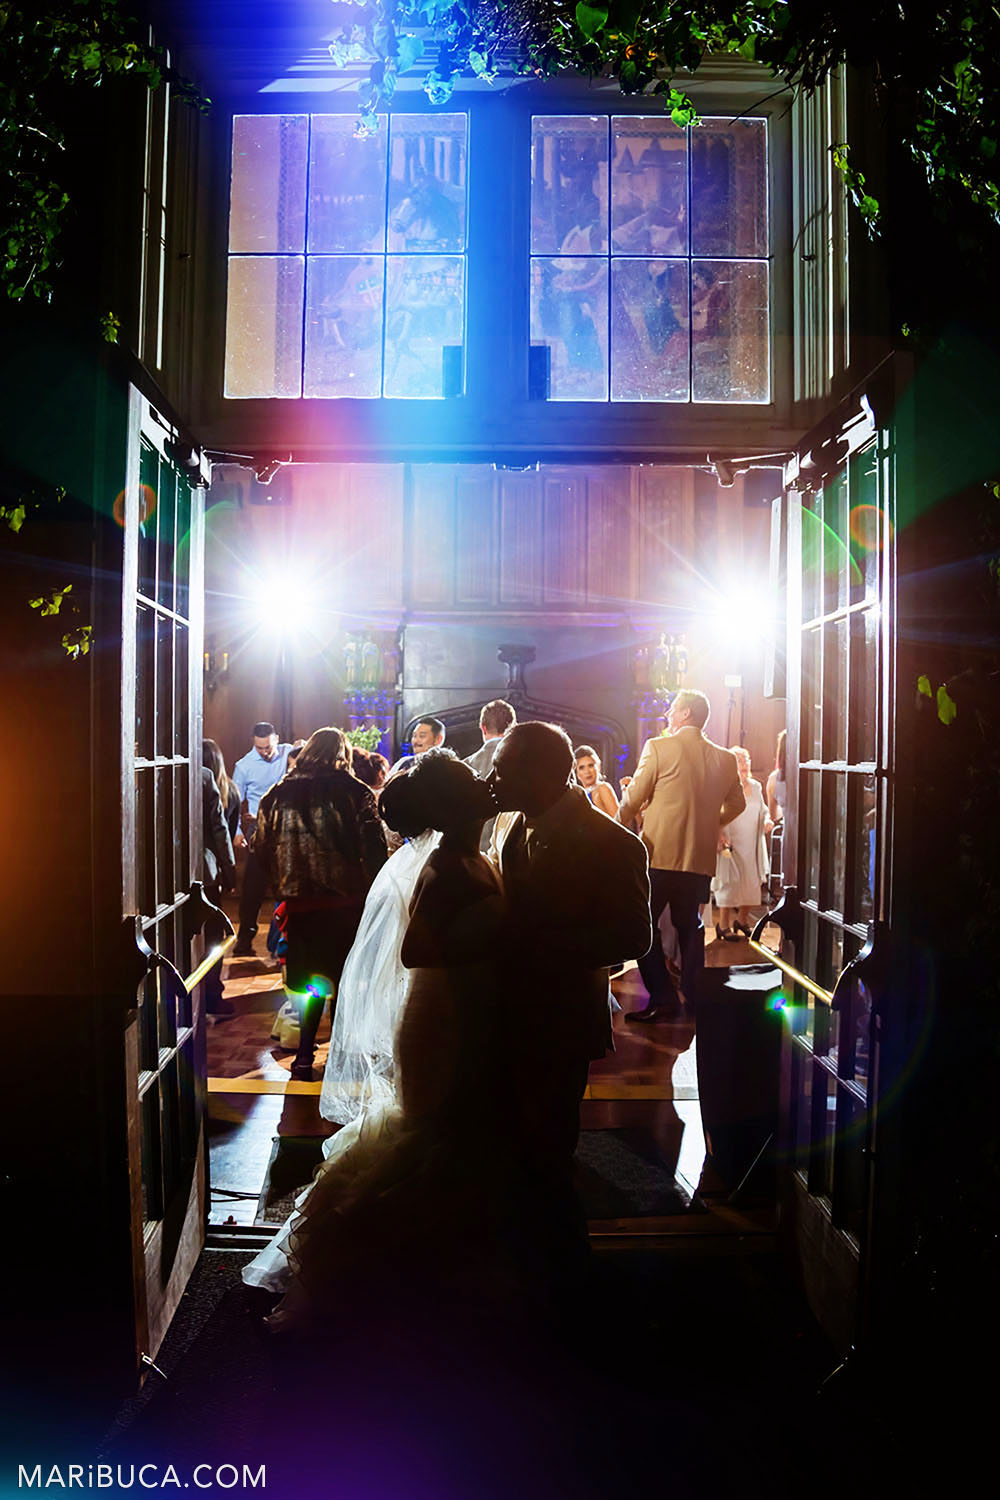 Bride and groom kiss each other surrounded by colorful lights and guests in the Great Hall, Kohl Mansion, Burlingame